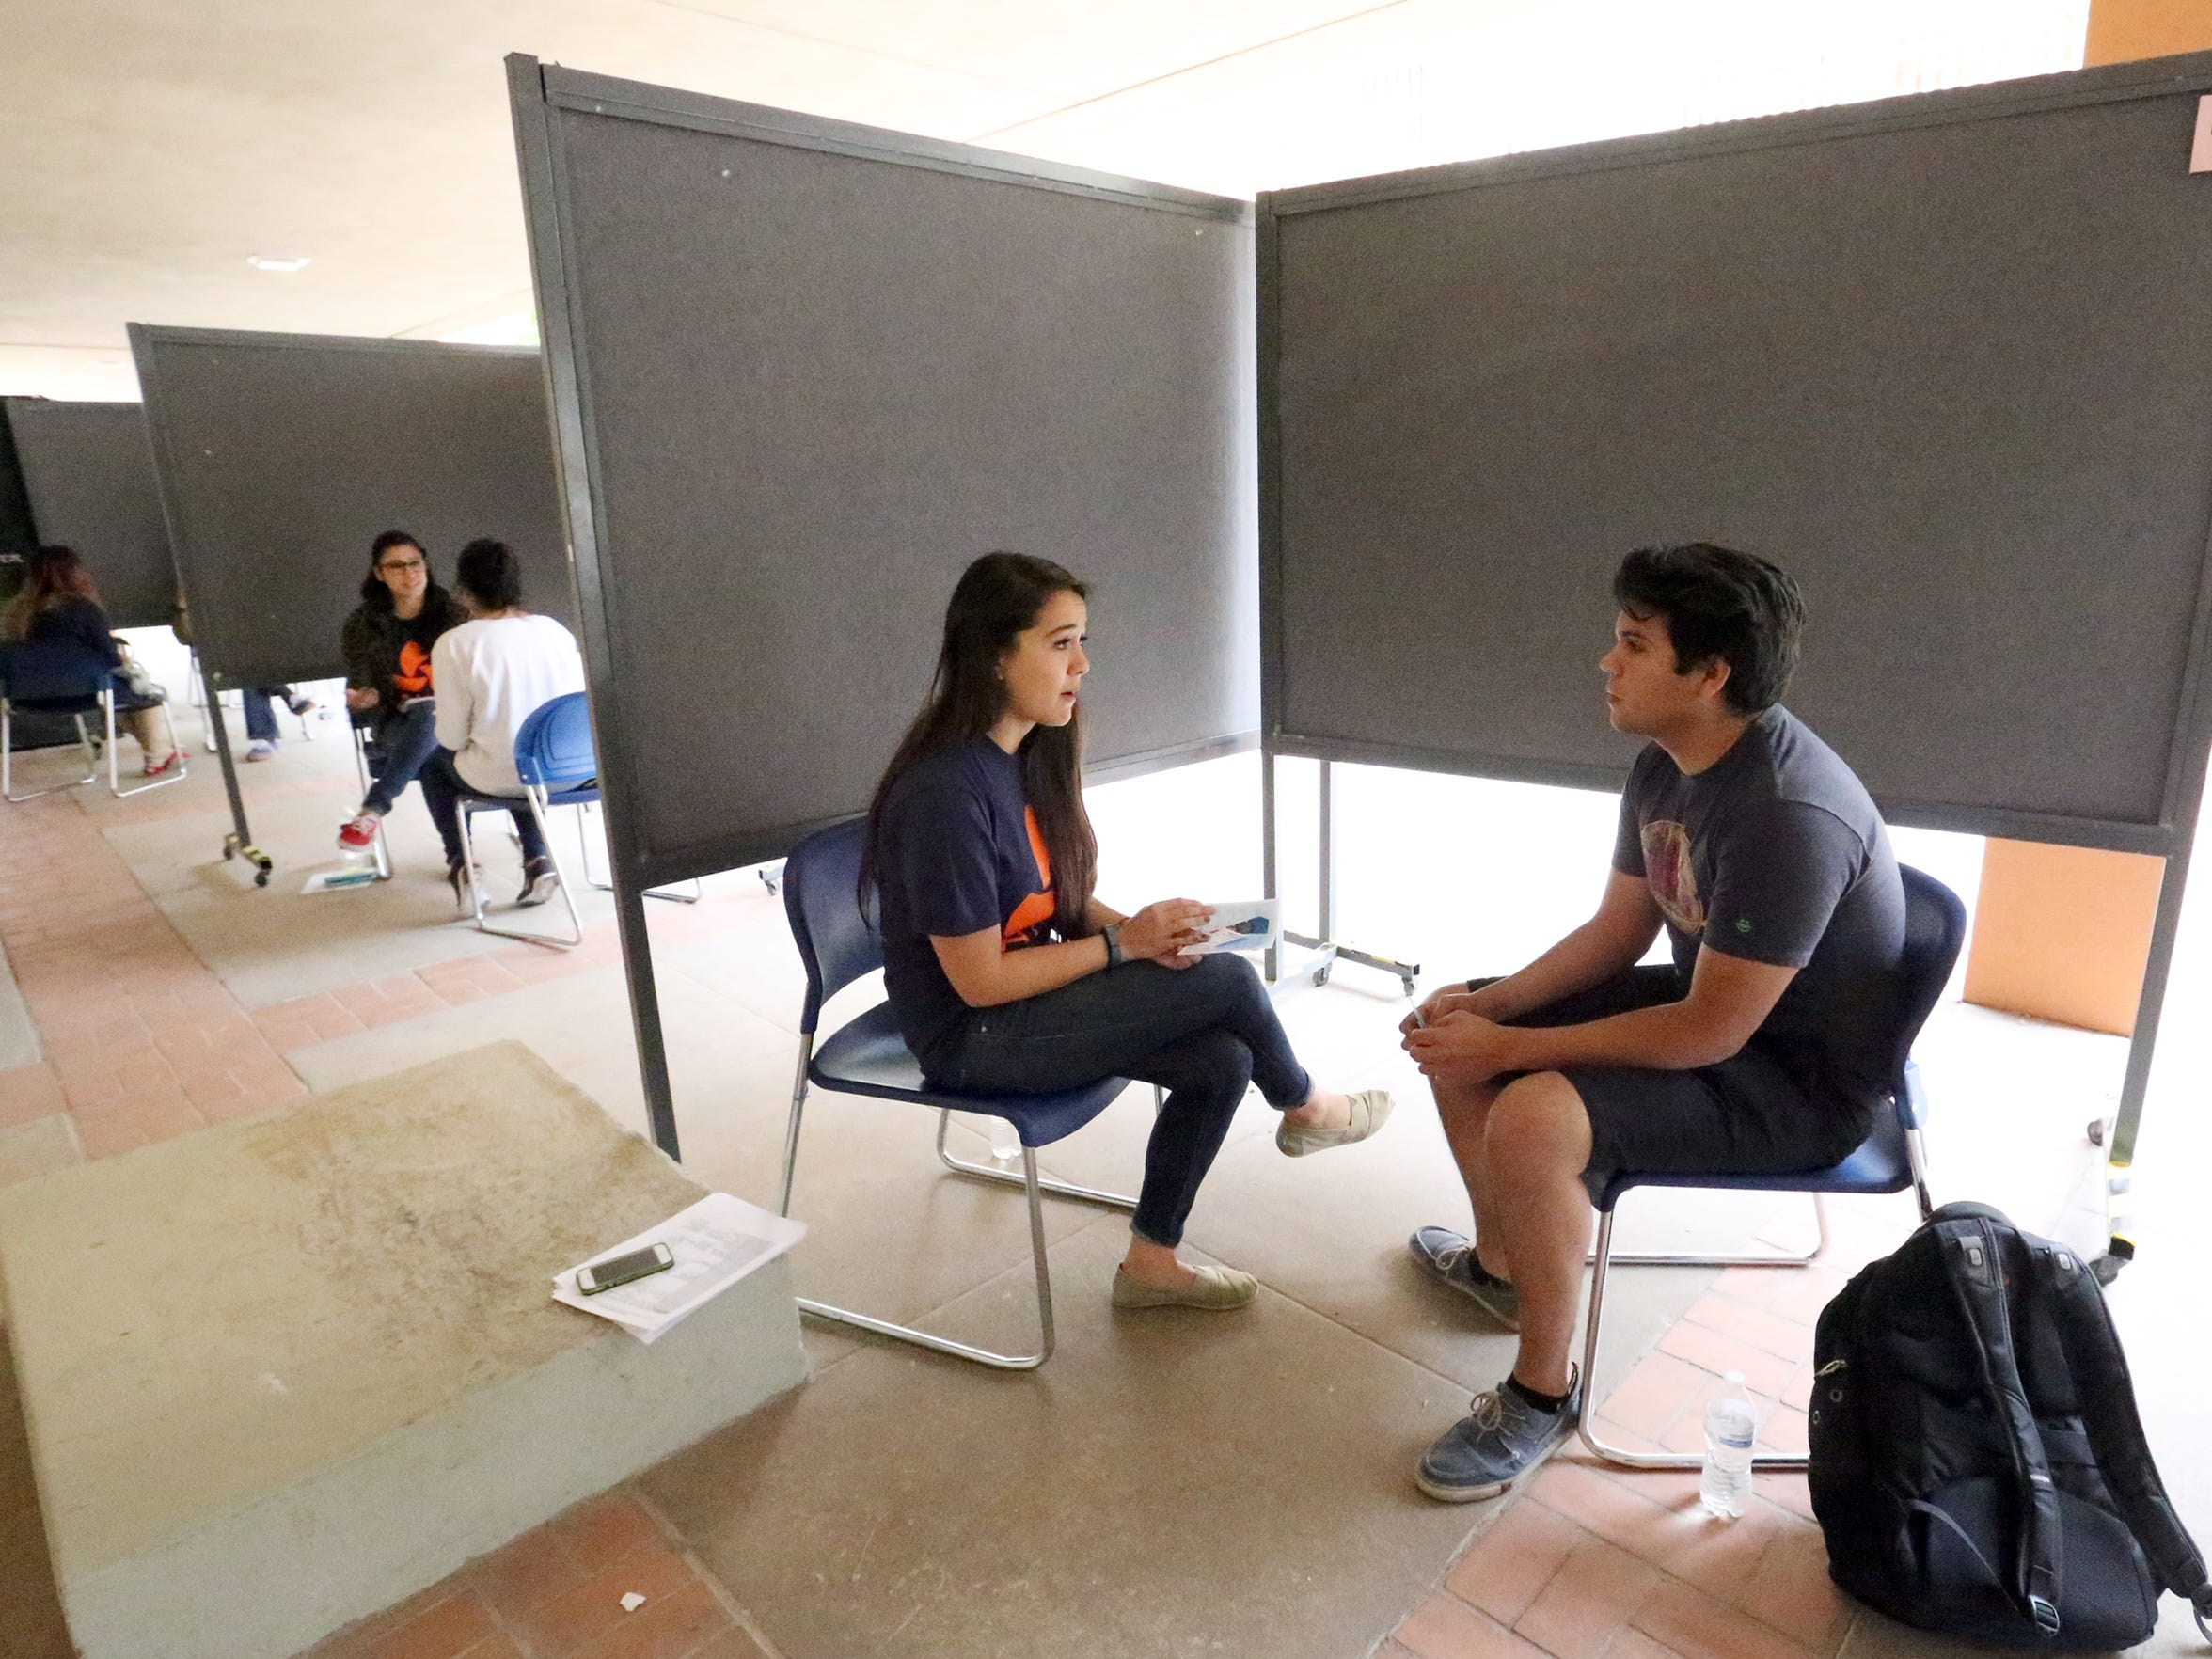 Clinical psychology student Reyna Puentes, left, interviews mechanical engineering student David Baca during a research initiative Thursday, April 7 at the UTEP student union courtyard. The research was conducted by the Latinos Alcohol Health Disparities Research Center at UTEP.